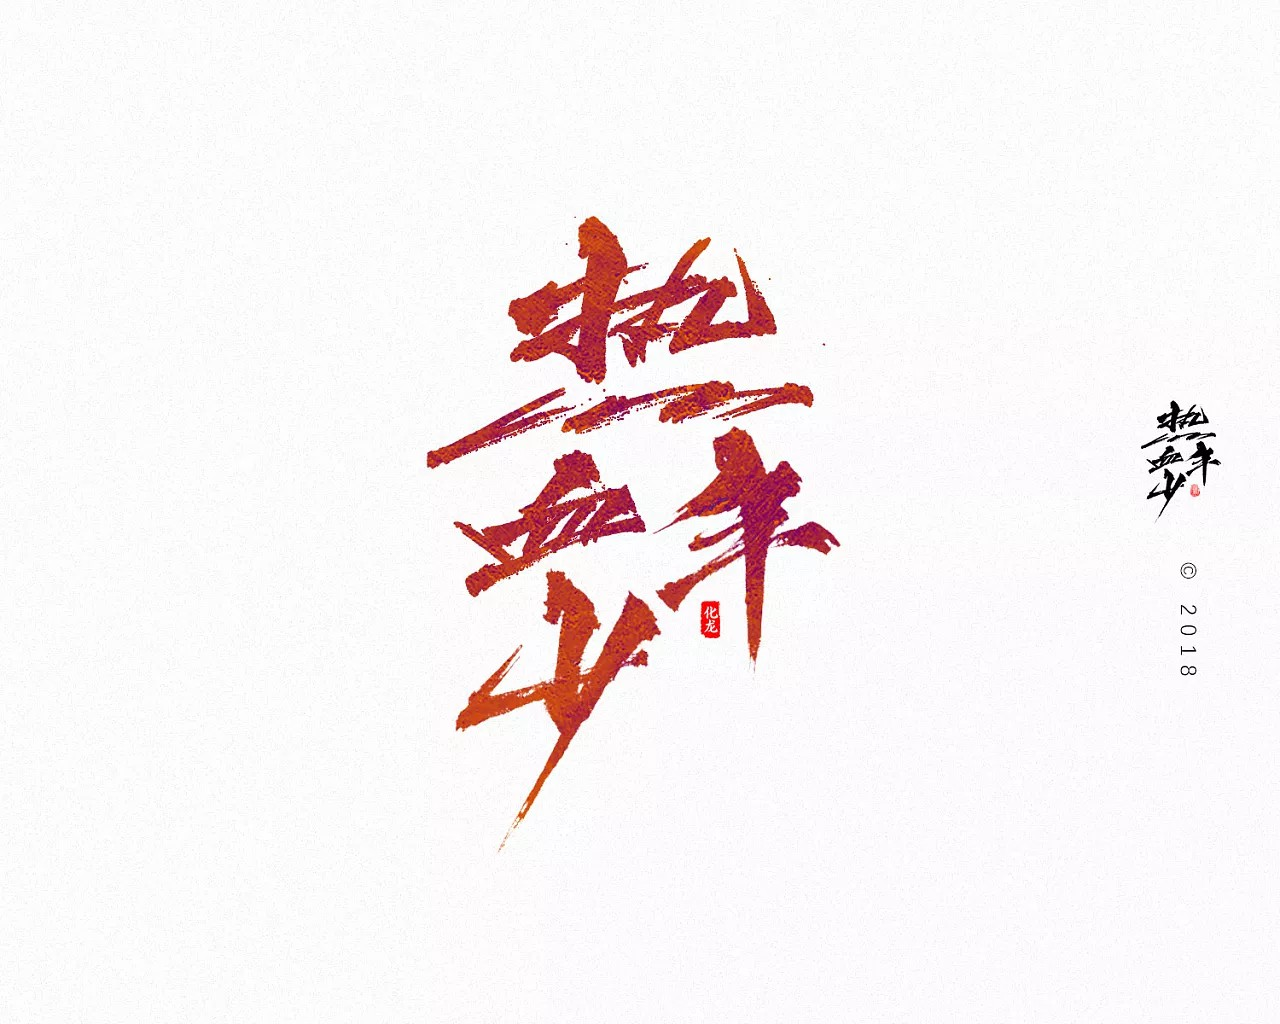 18P Chinese traditional calligraphy brush calligraphy font style appreciation #151